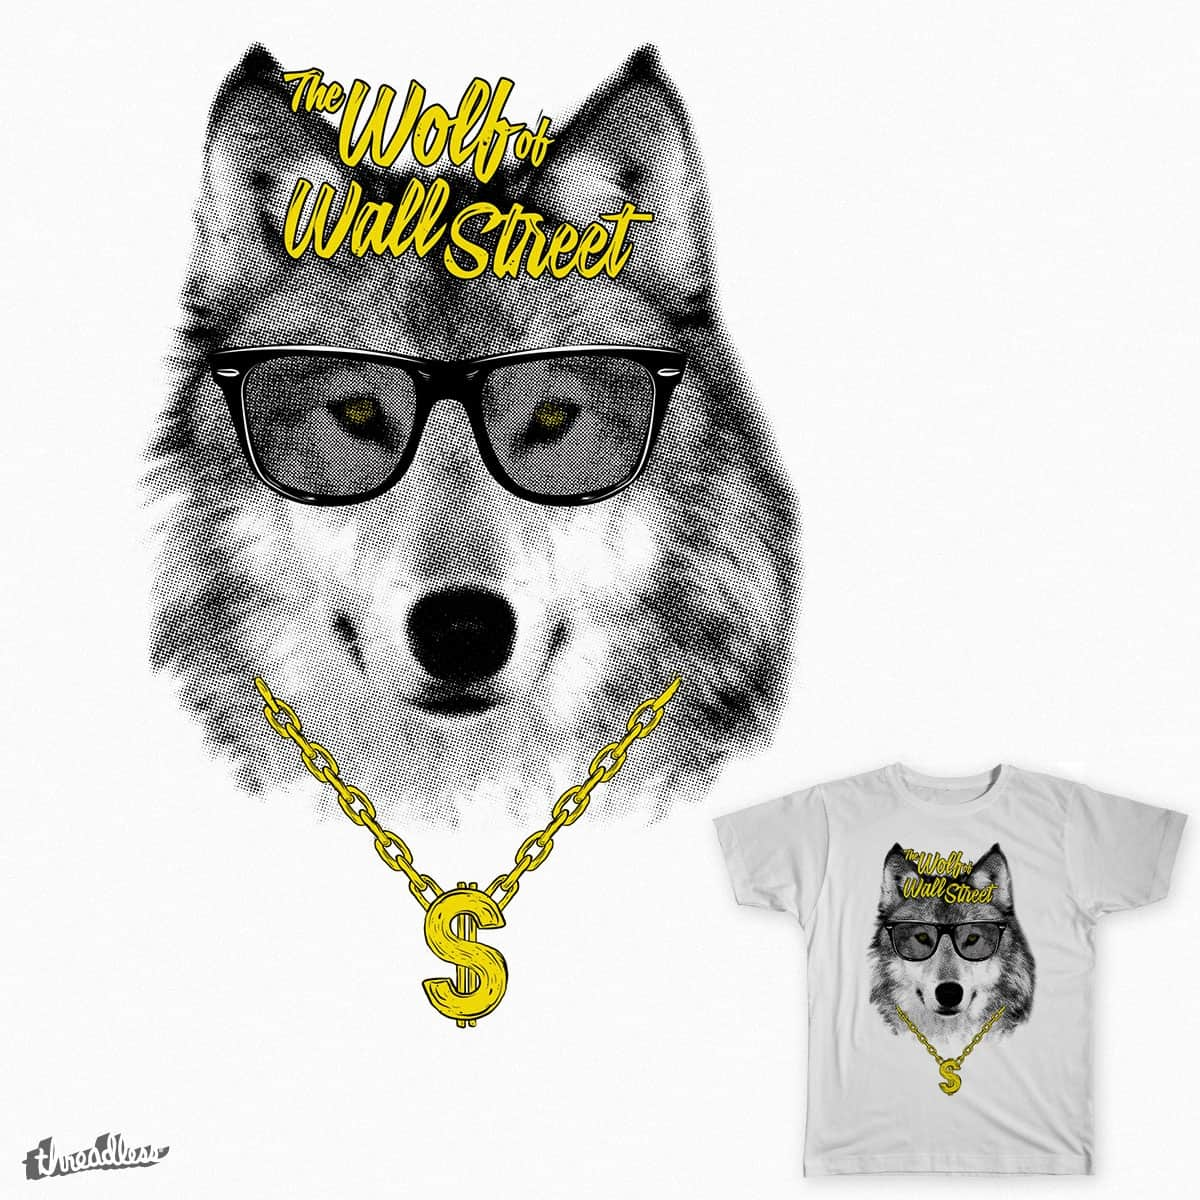 The Wolf of Wall Street by rohan.jha.792 on Threadless